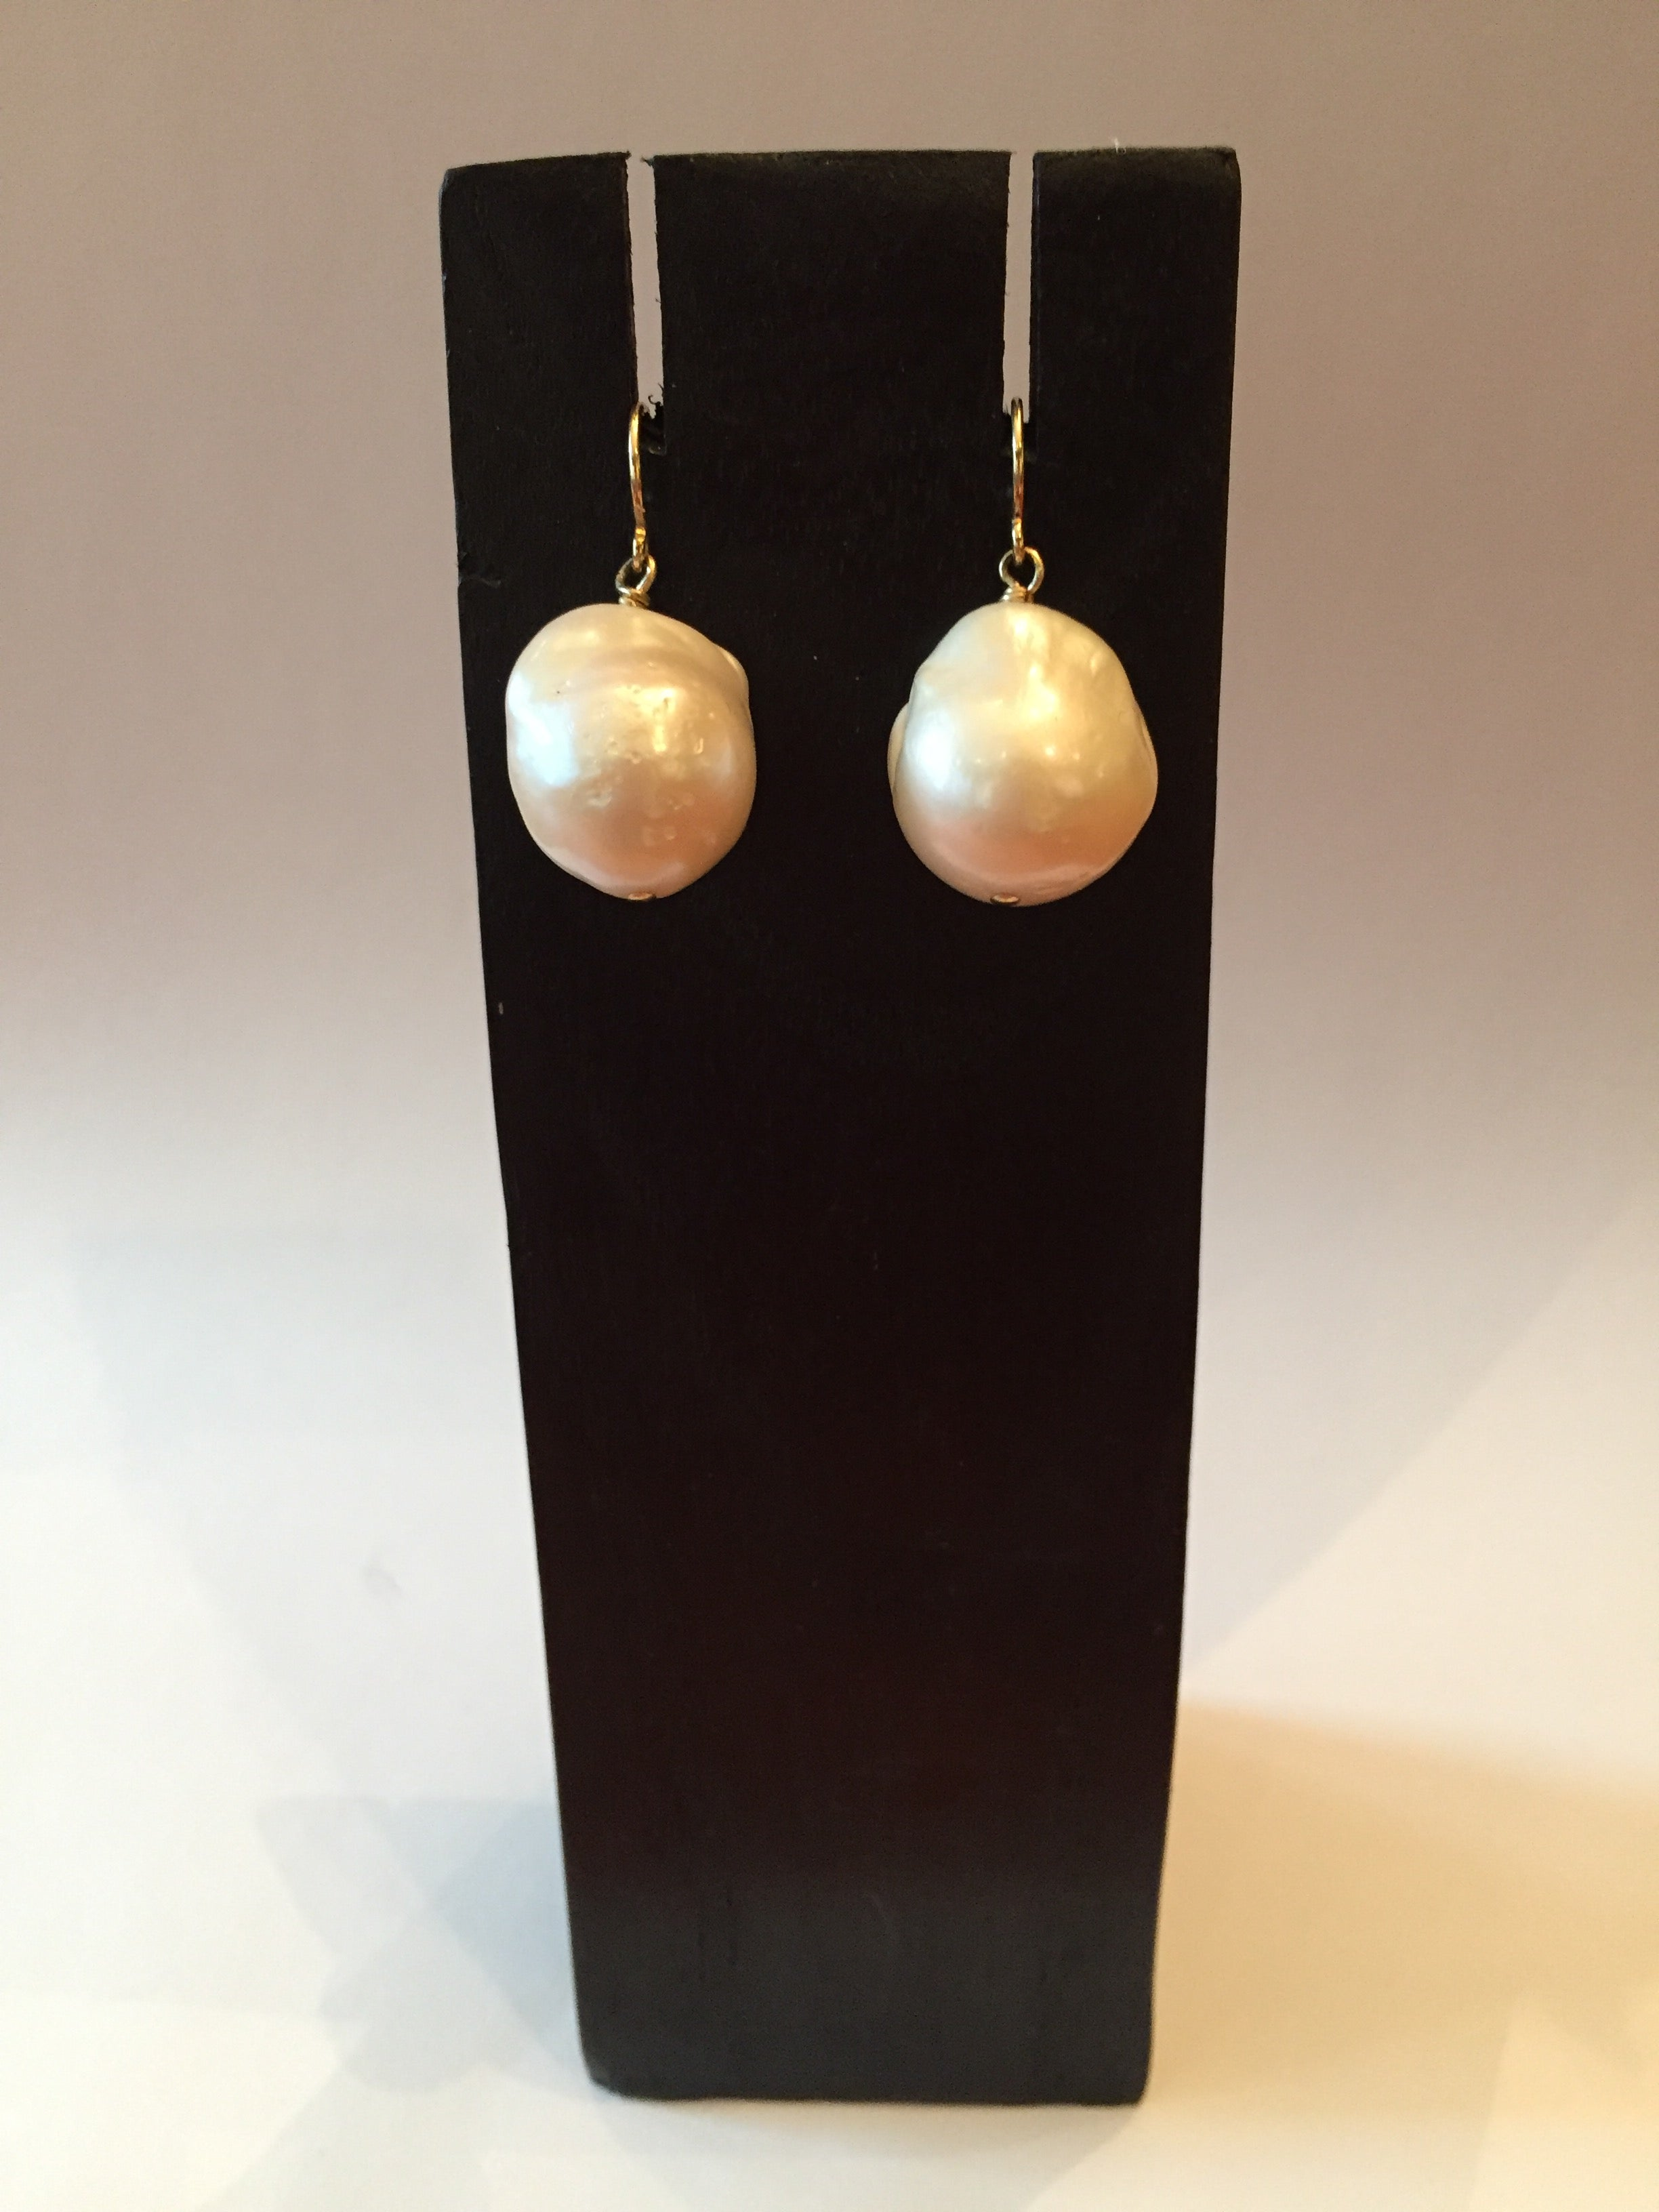 Baroque fresh water white pearl earrings 14k gold